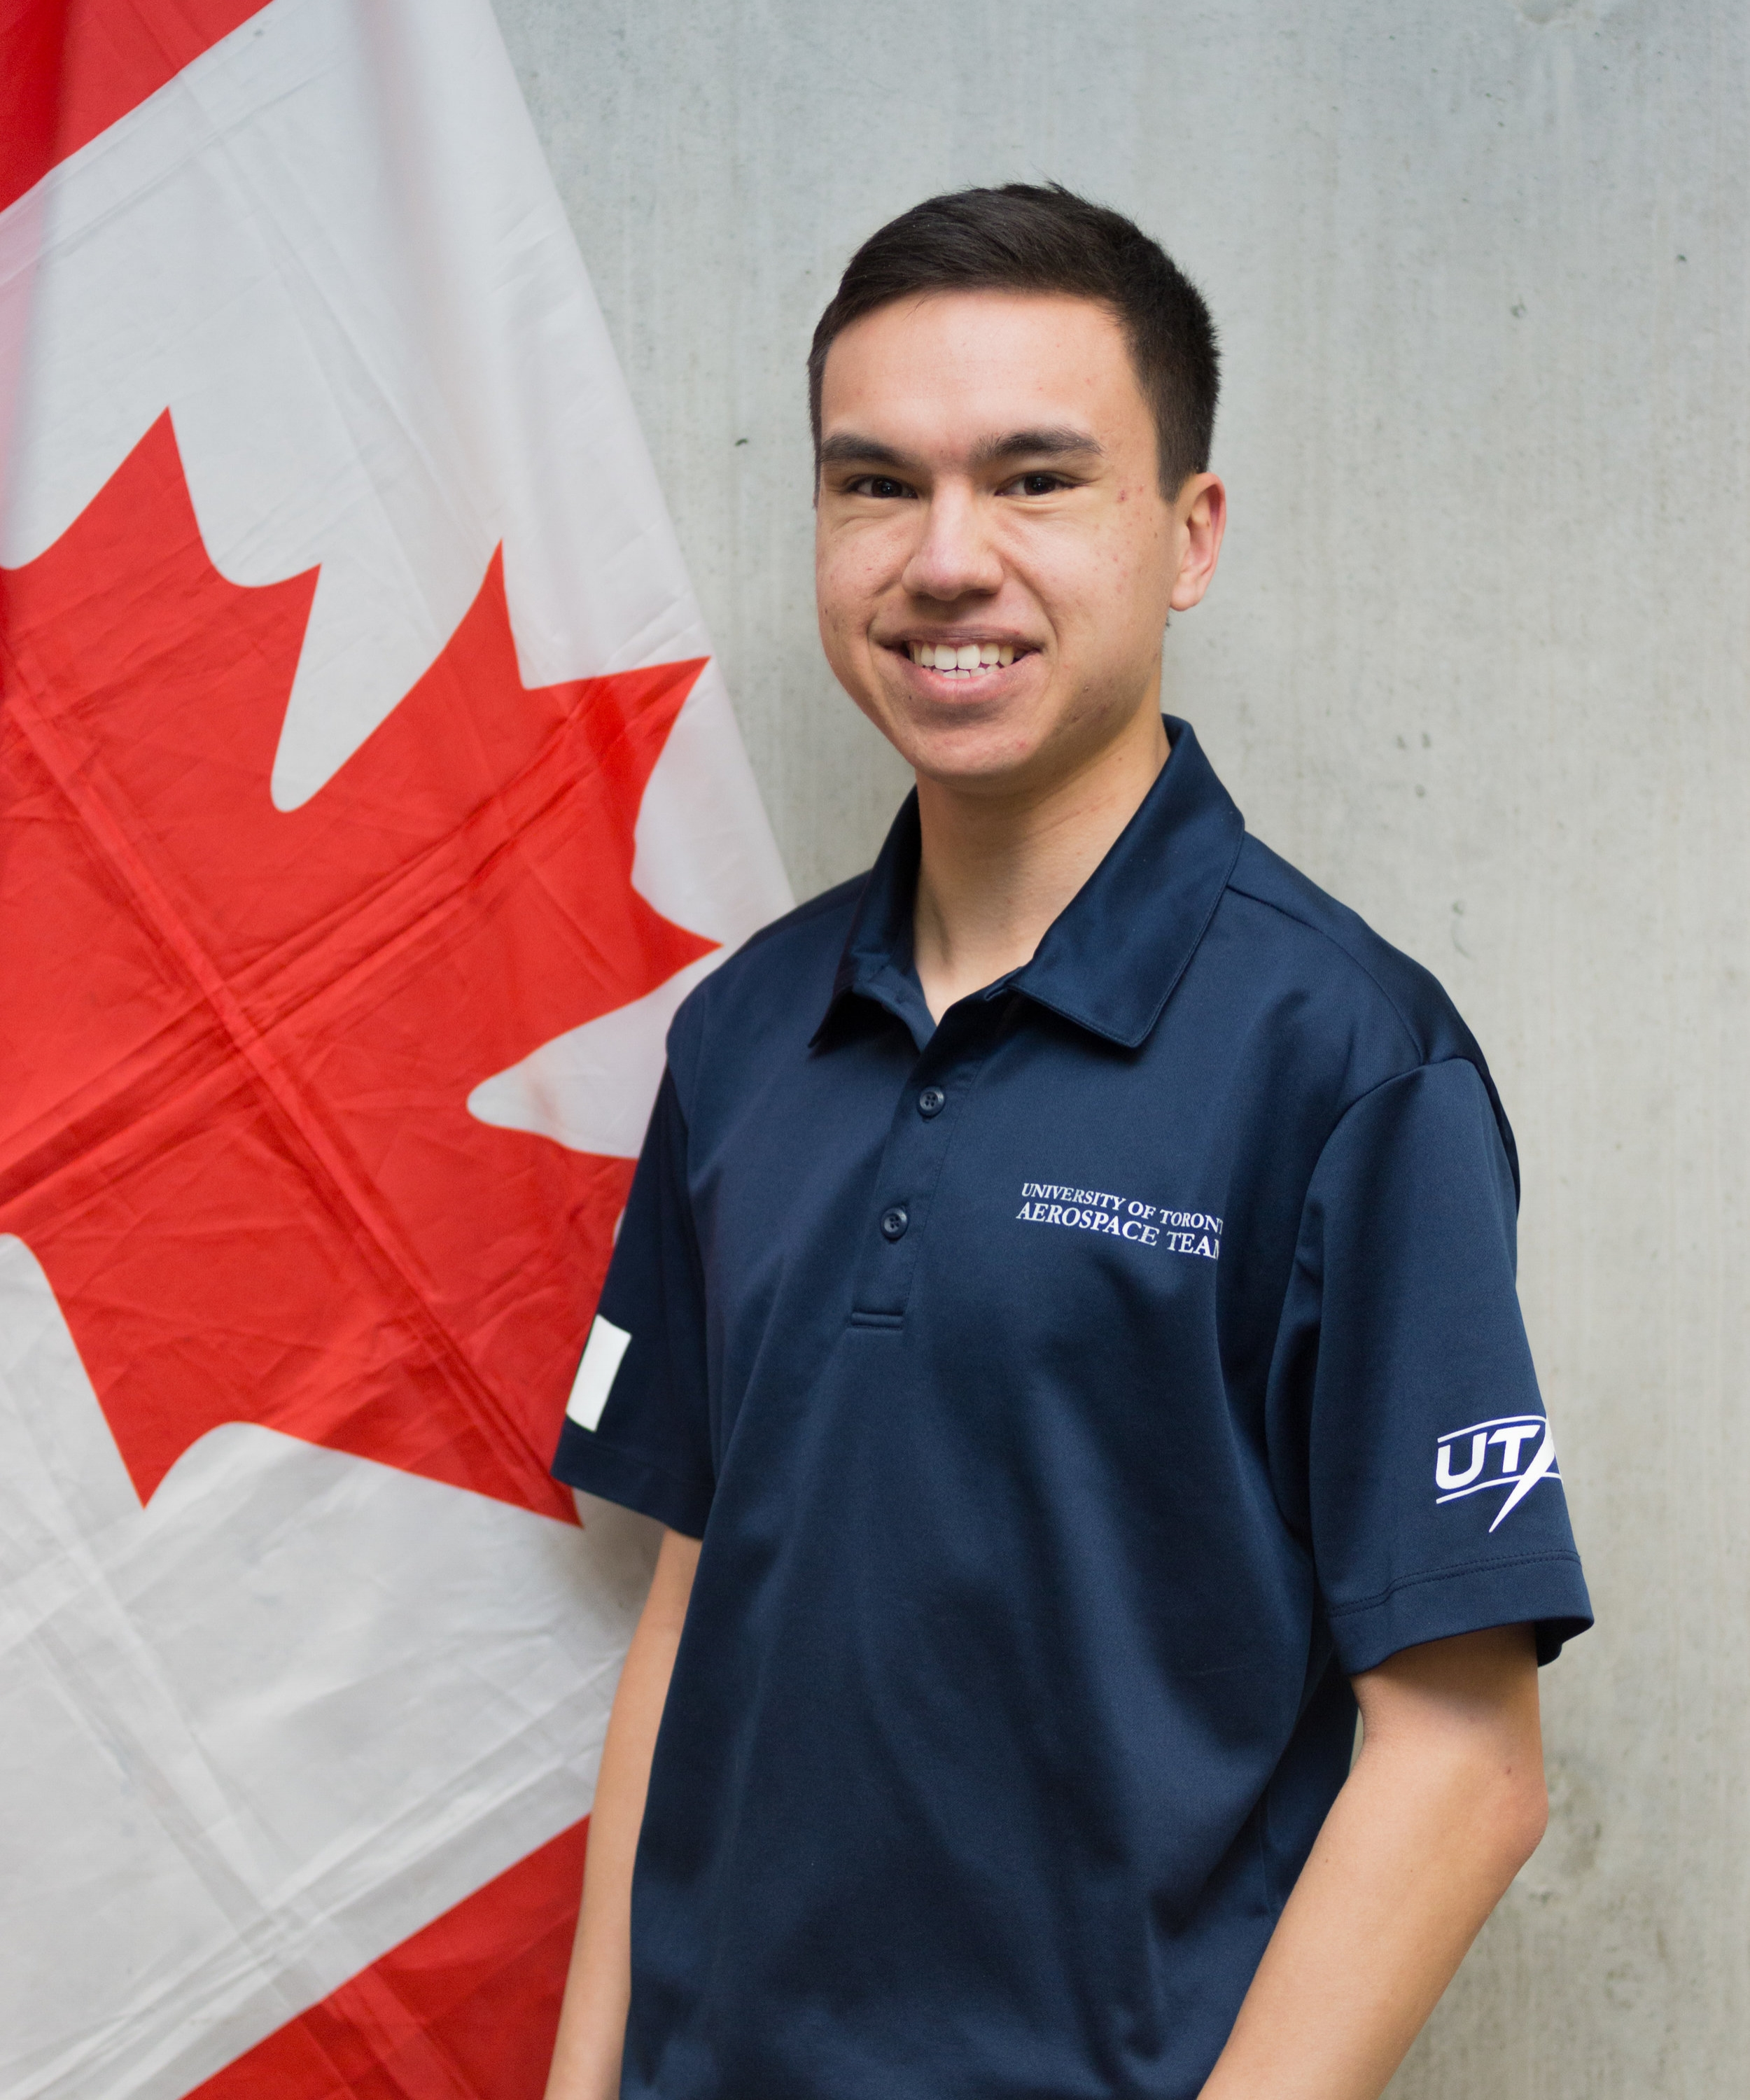 Erik Chau   Erik has been a member of UTAT UAV for many years, and served as the Division Lead just before graduating from U of T. He continues to provide valuable management advice and historical perspective to the team.  His past positions in UTAT UAV were: 2016-2017 Division Lead, 2015-2016 Avionics Lead, 2014-2015 Airframe Lead